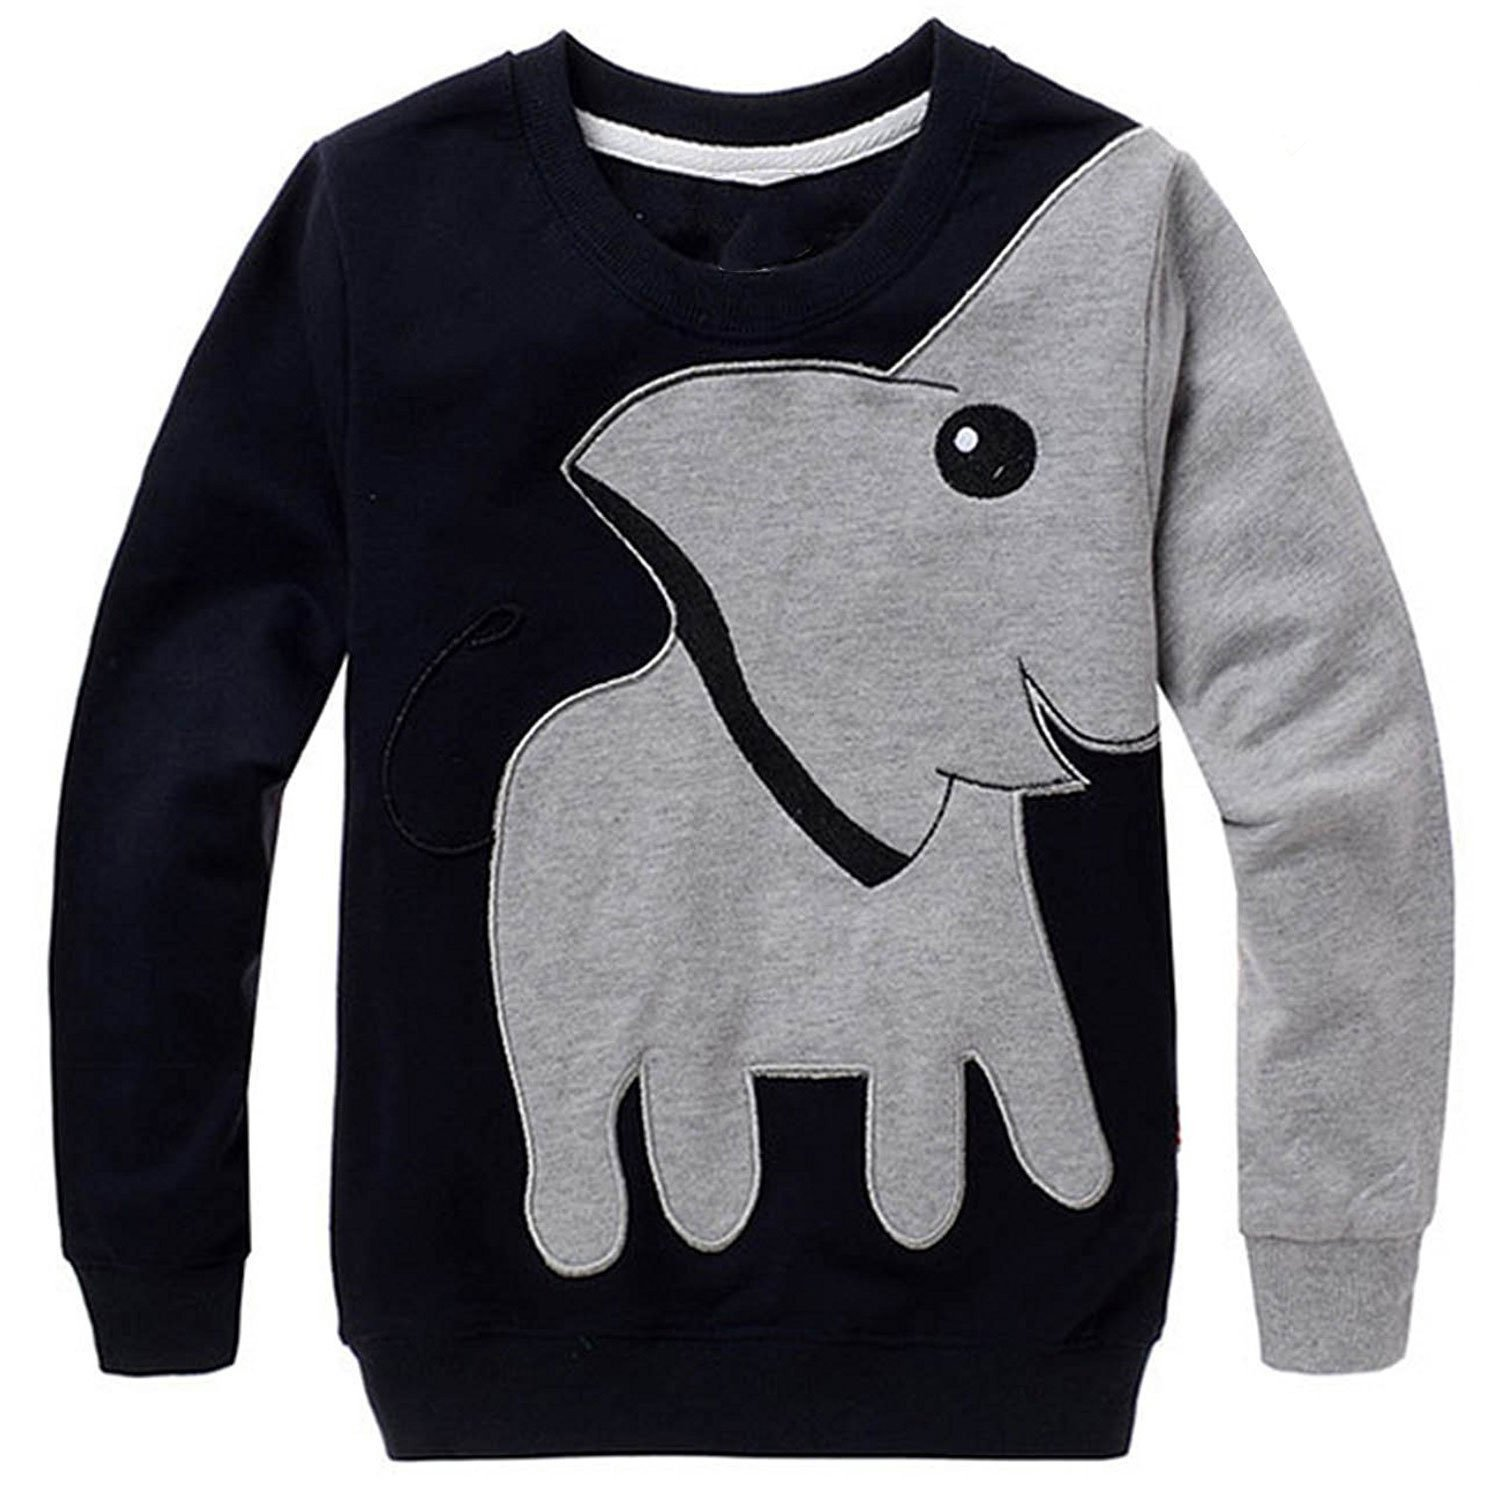 Jomago Boys Shirts Toddler Long Sleeve Top Kids Elephant Tee Toddler Sport Sweatshirt